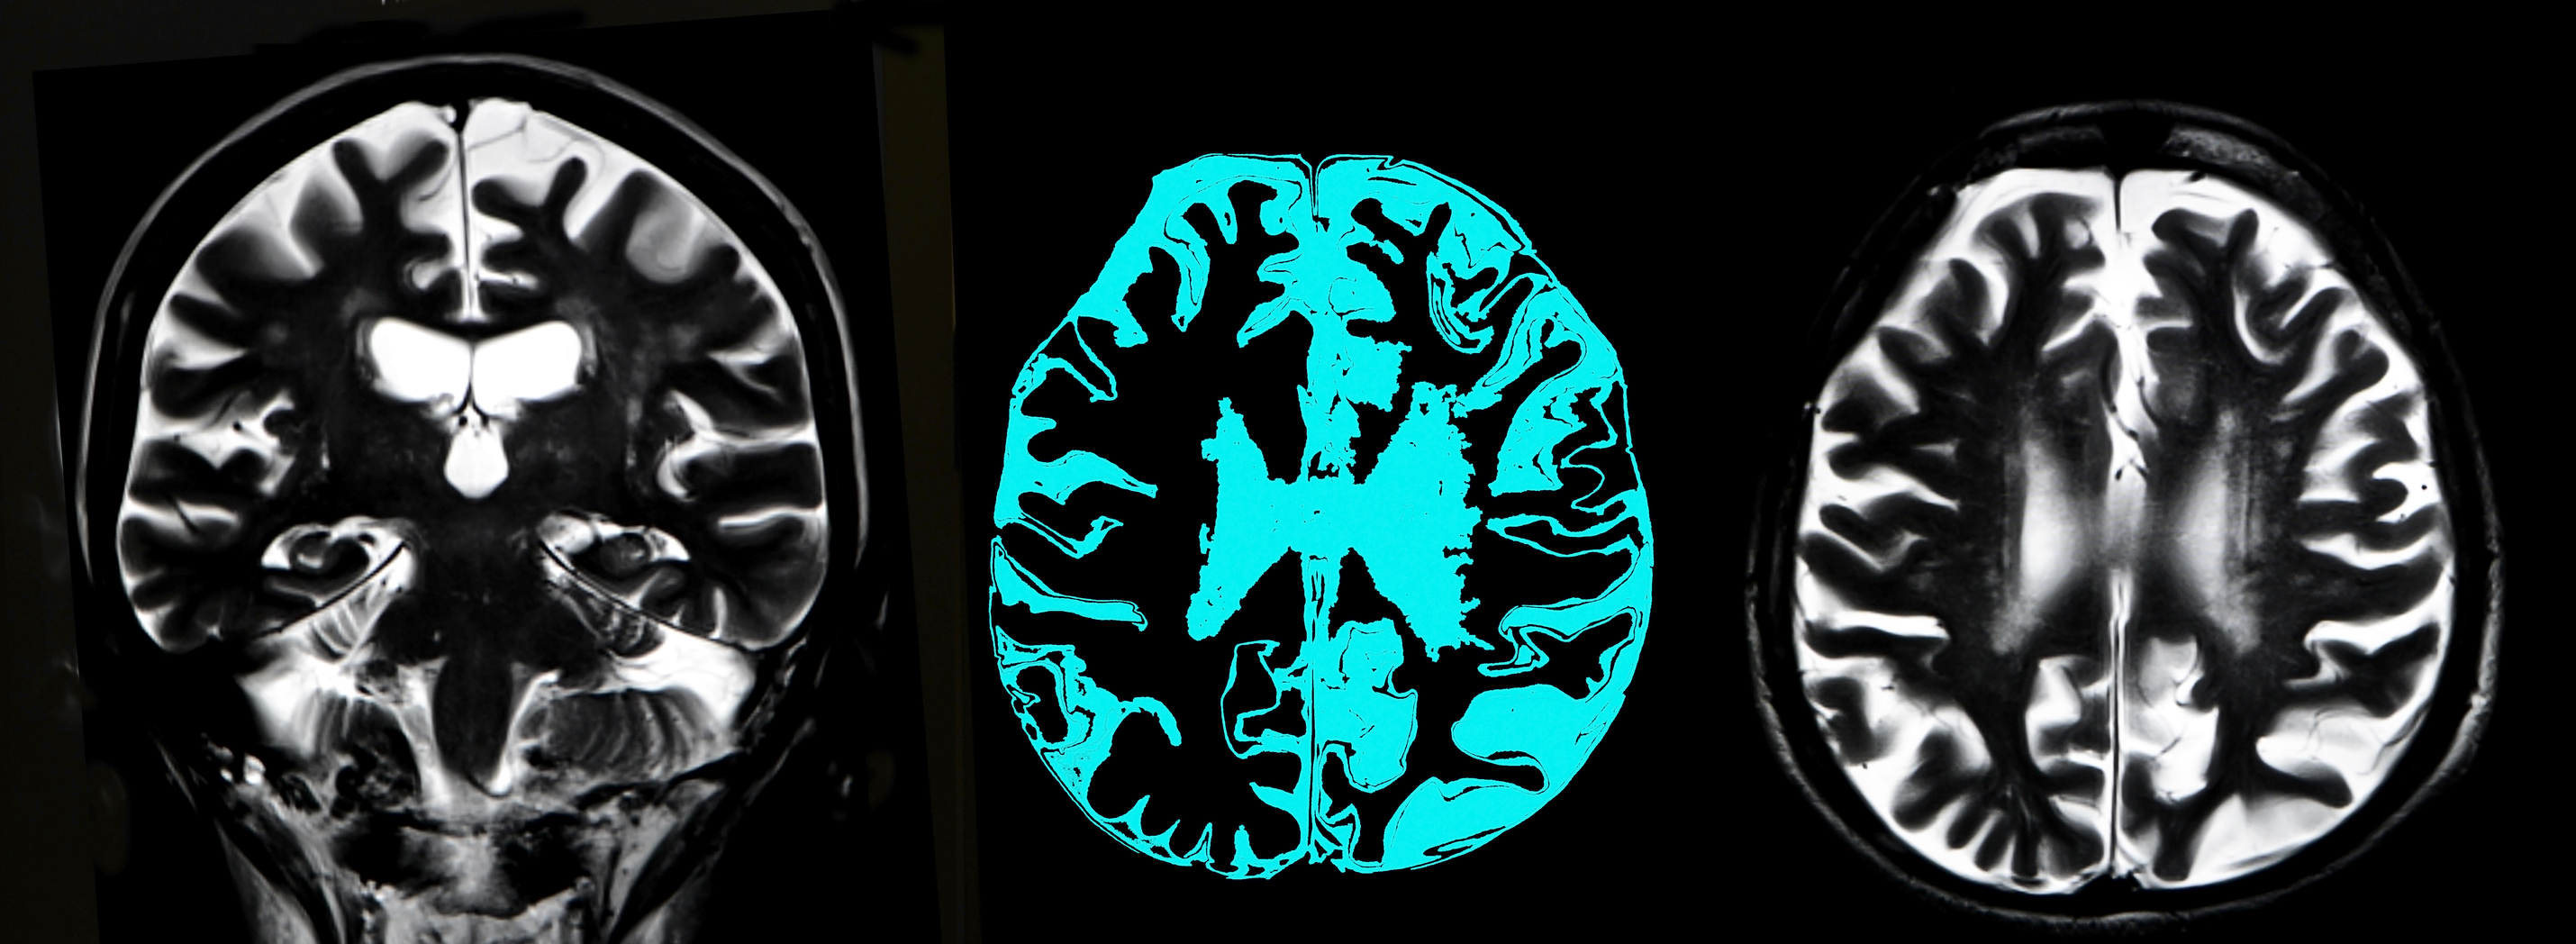 brain atrophy resembling early stage alzheimer's linked to cognitive impairment in type 2 diabetes